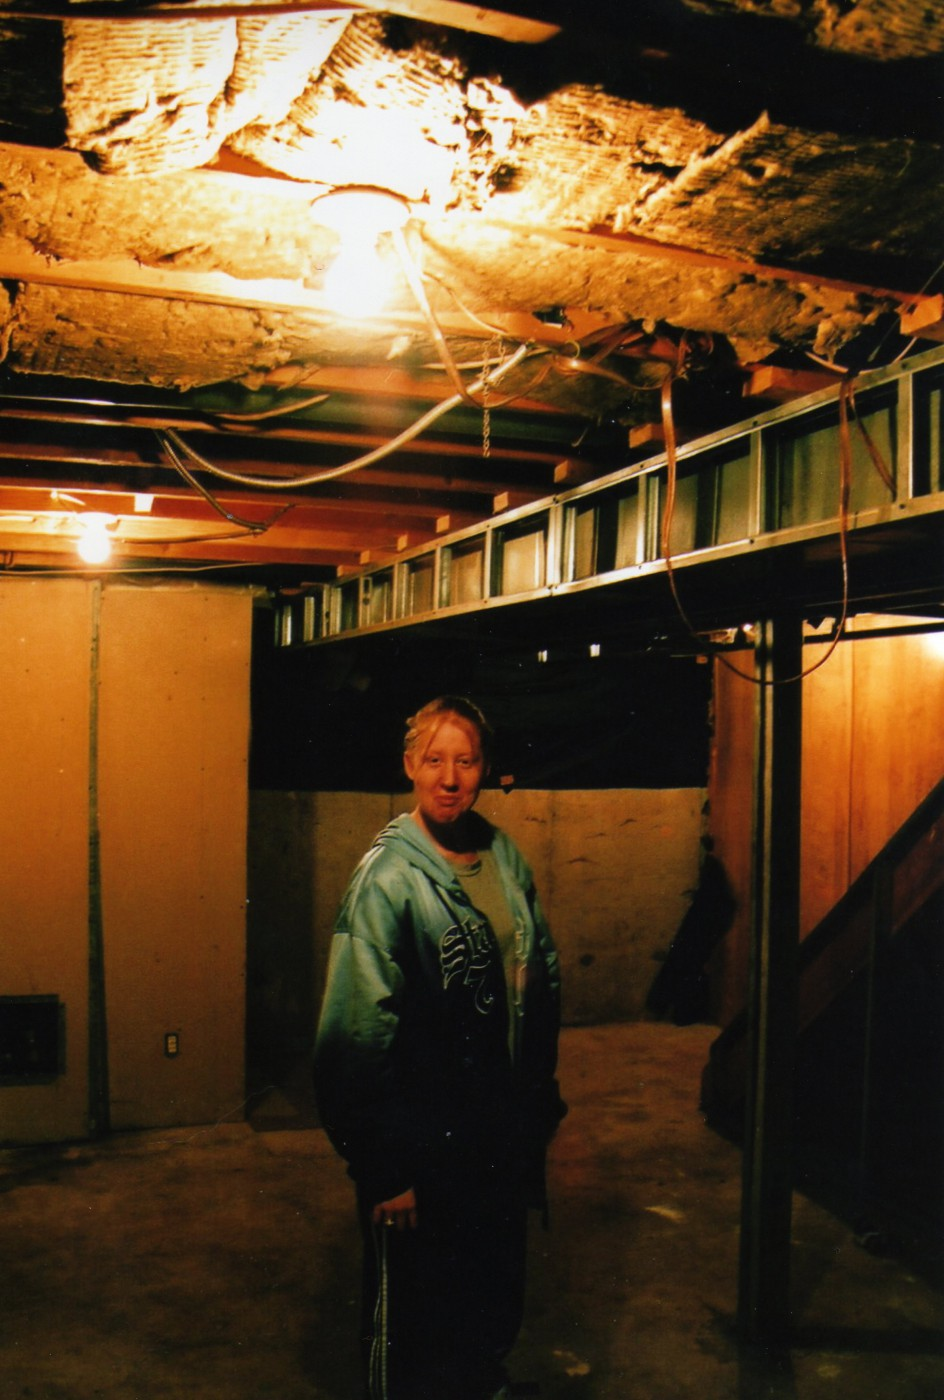 April Ryk, </span><span><em>Basement, 2008</em>, </span><span>Analog, 12x8